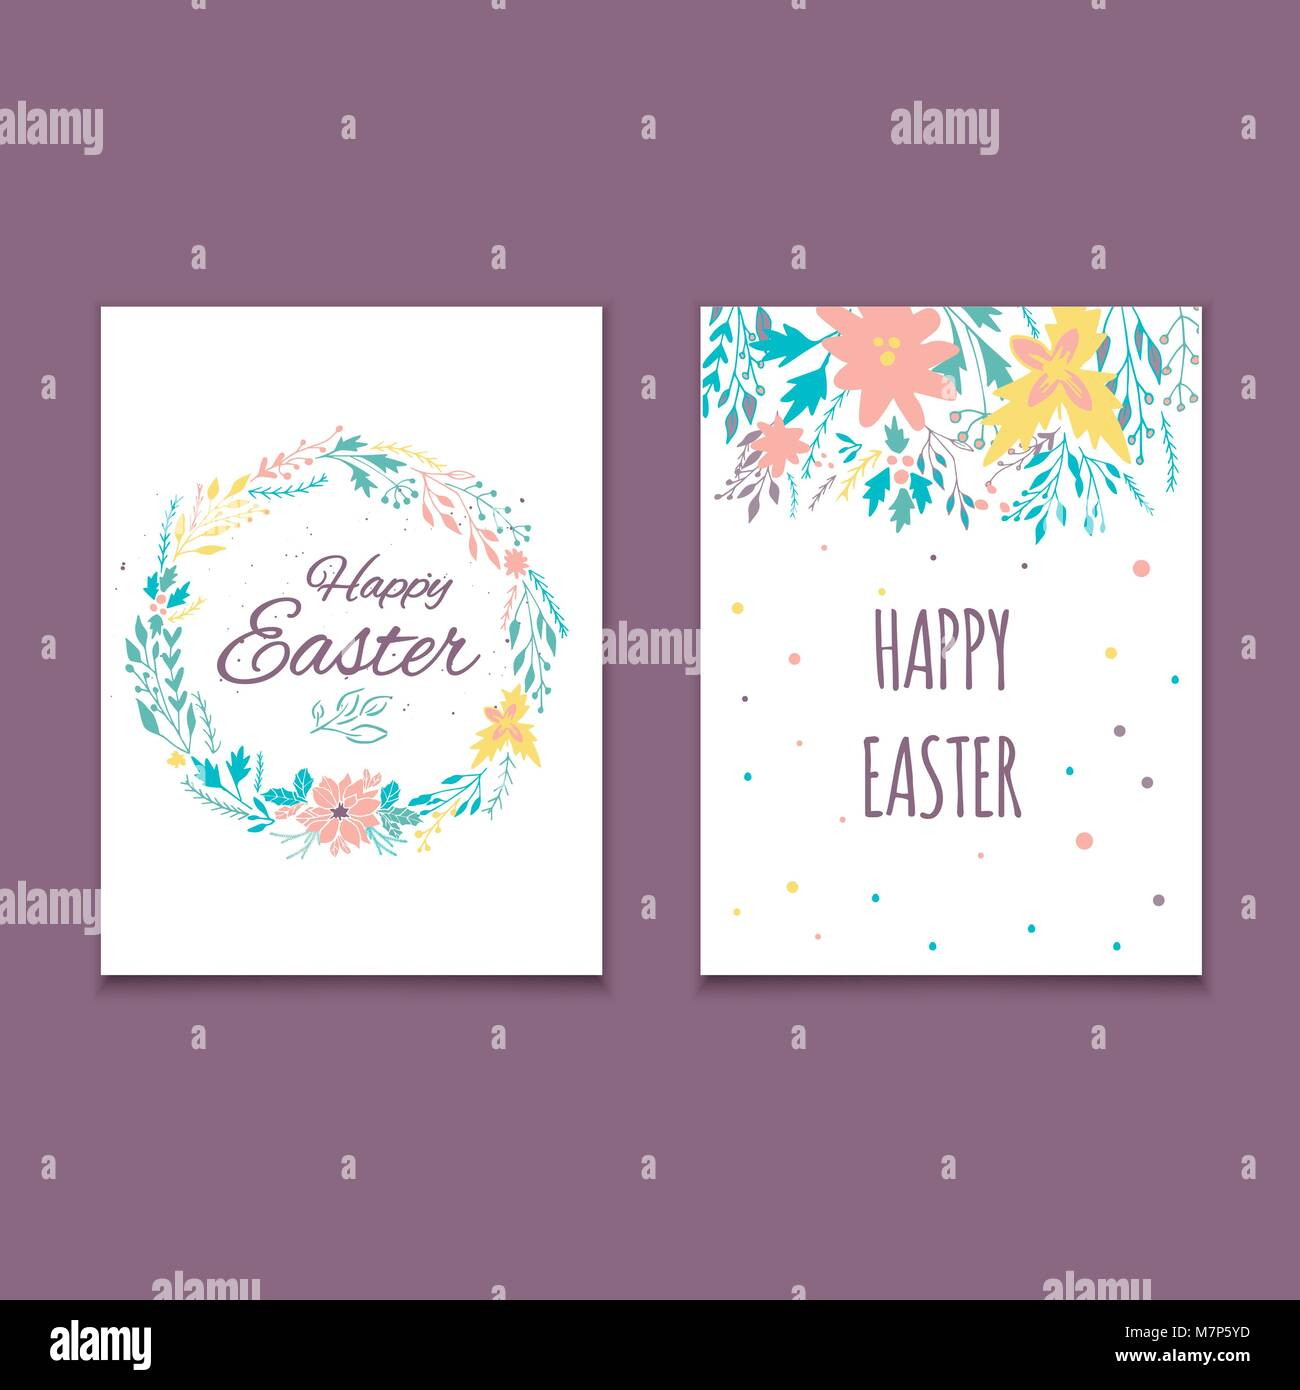 Easter Postcard Template Hand Drawn Illustration Modern Or Invitation For Holliday